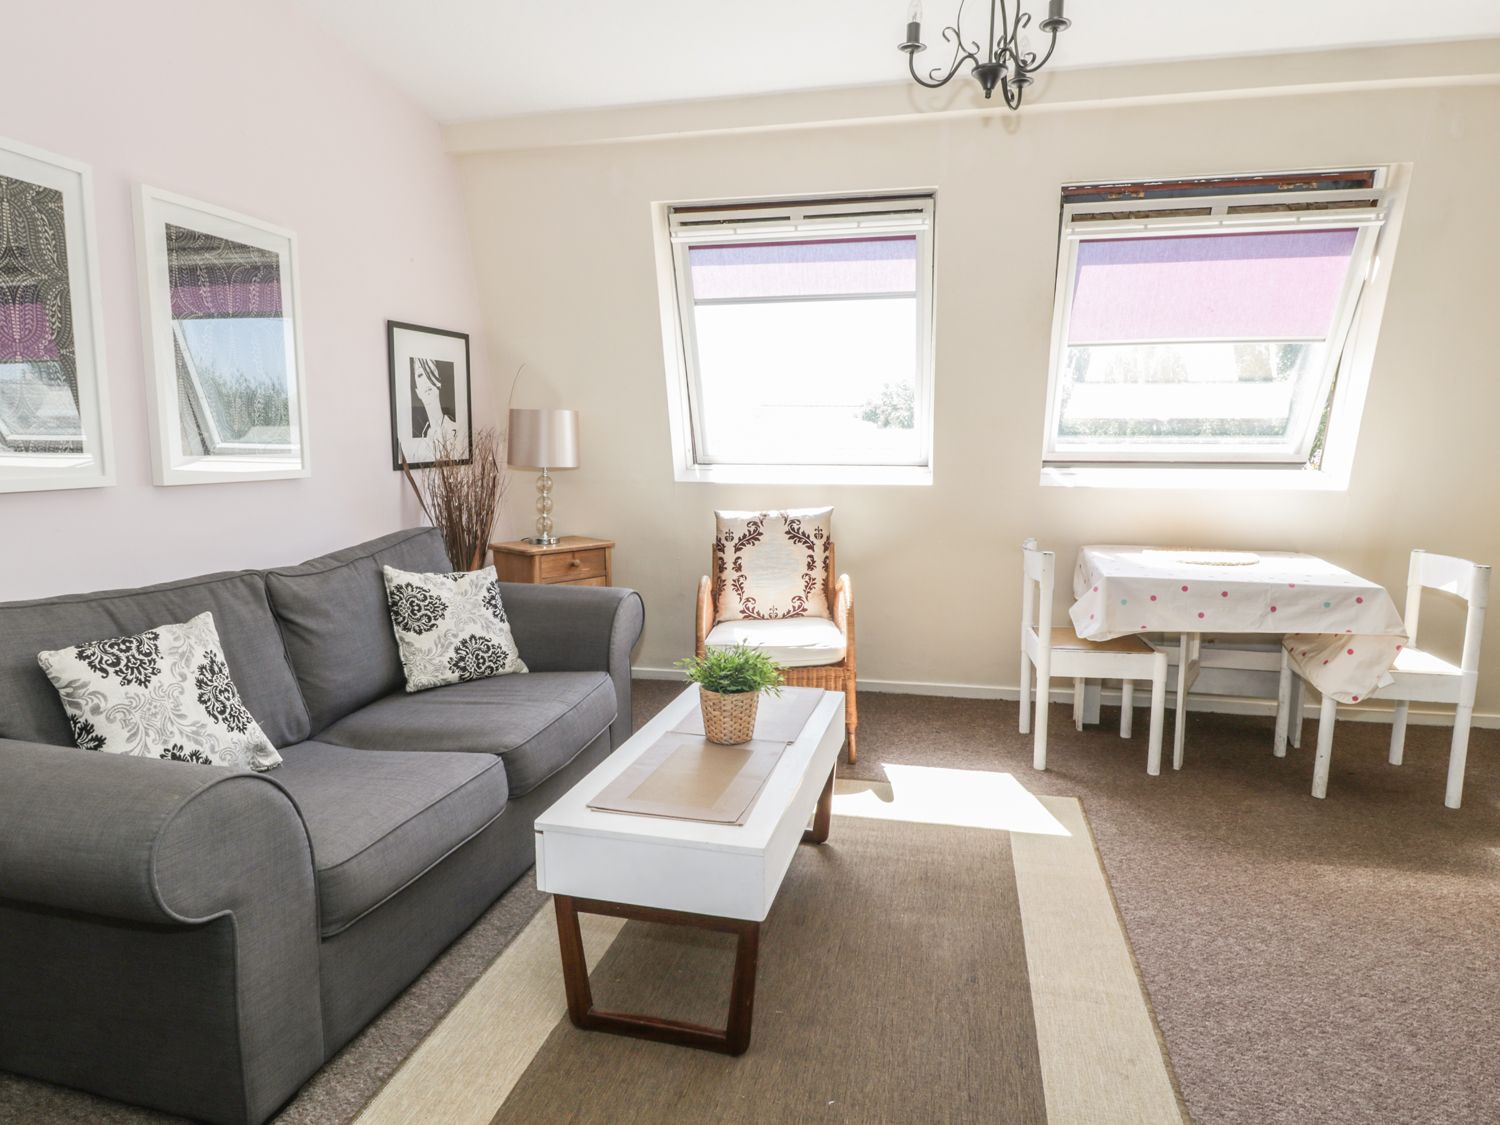 9 Albion Mews in Chester - sleeps 2 people